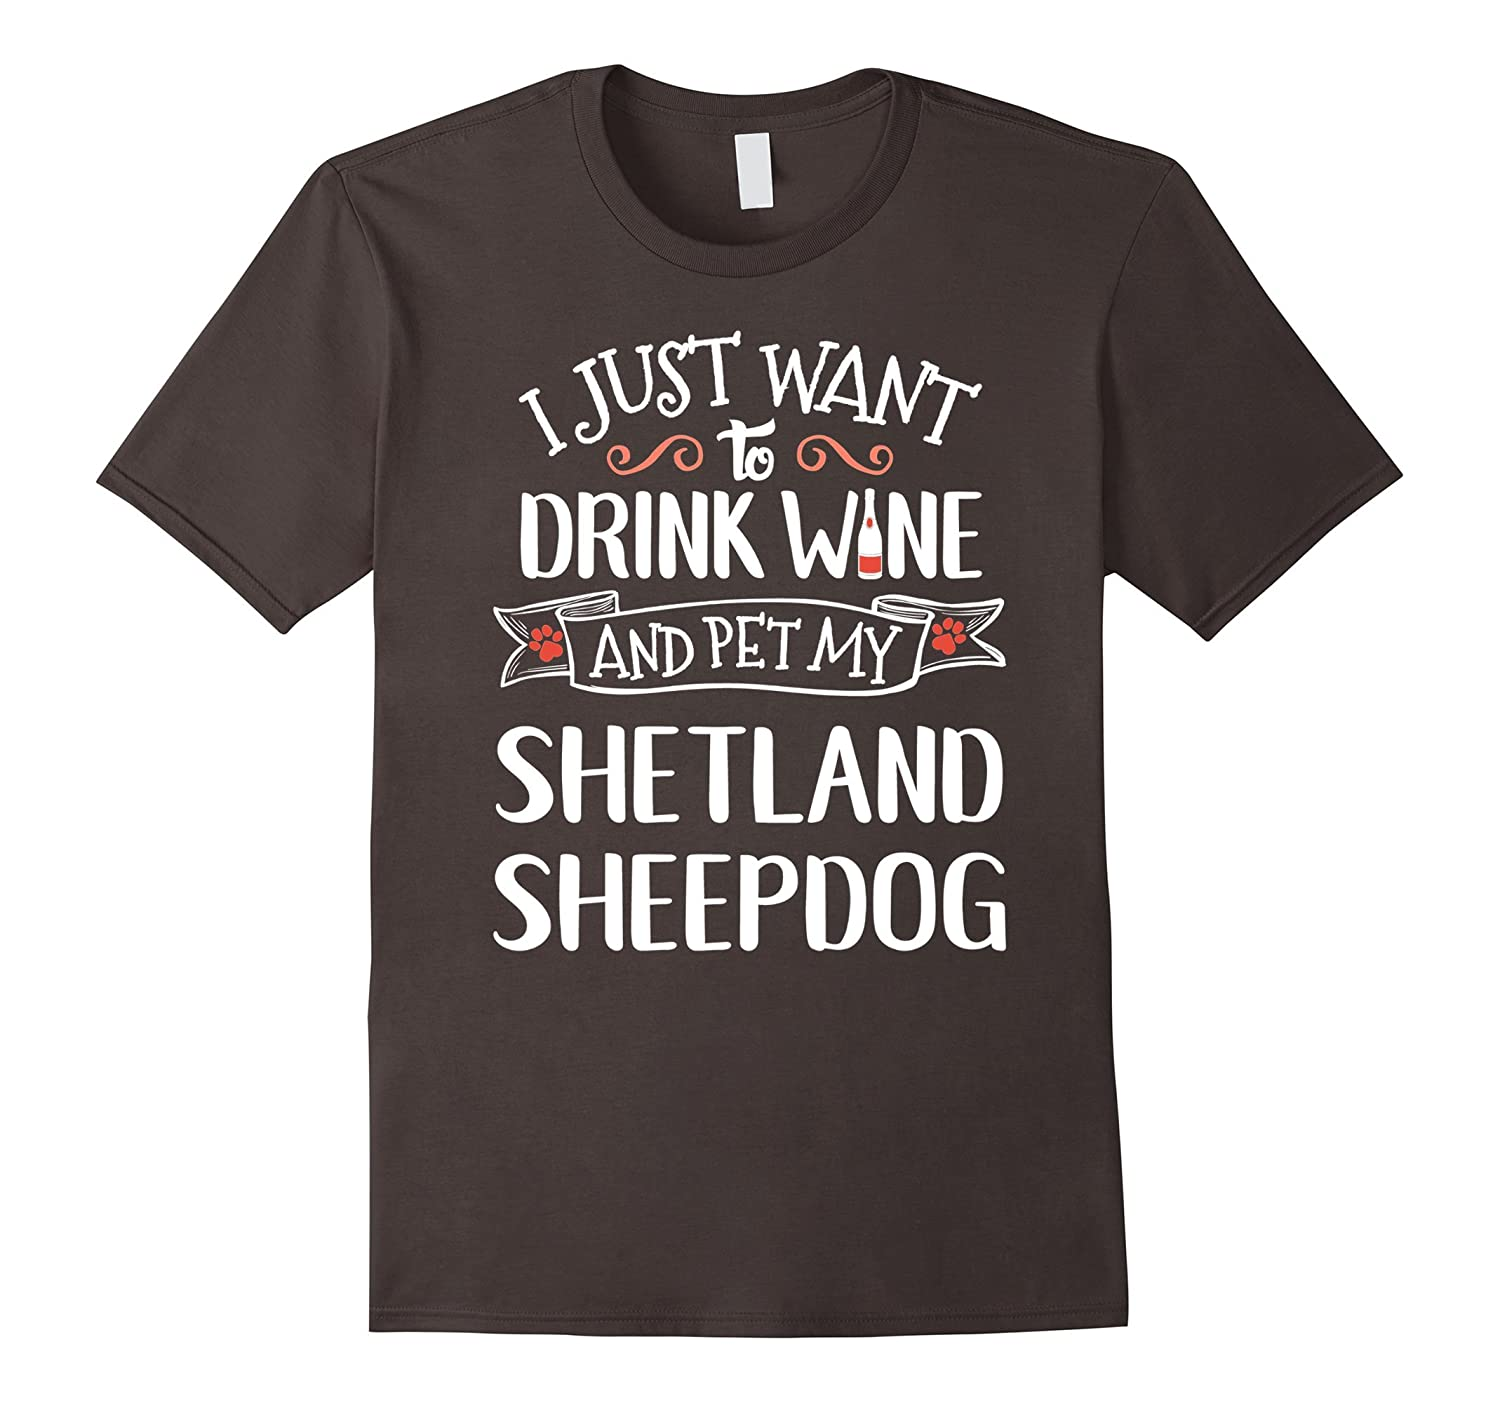 Shetland Sheepdog T-Shirt for Wine Lovers & Dog Owners